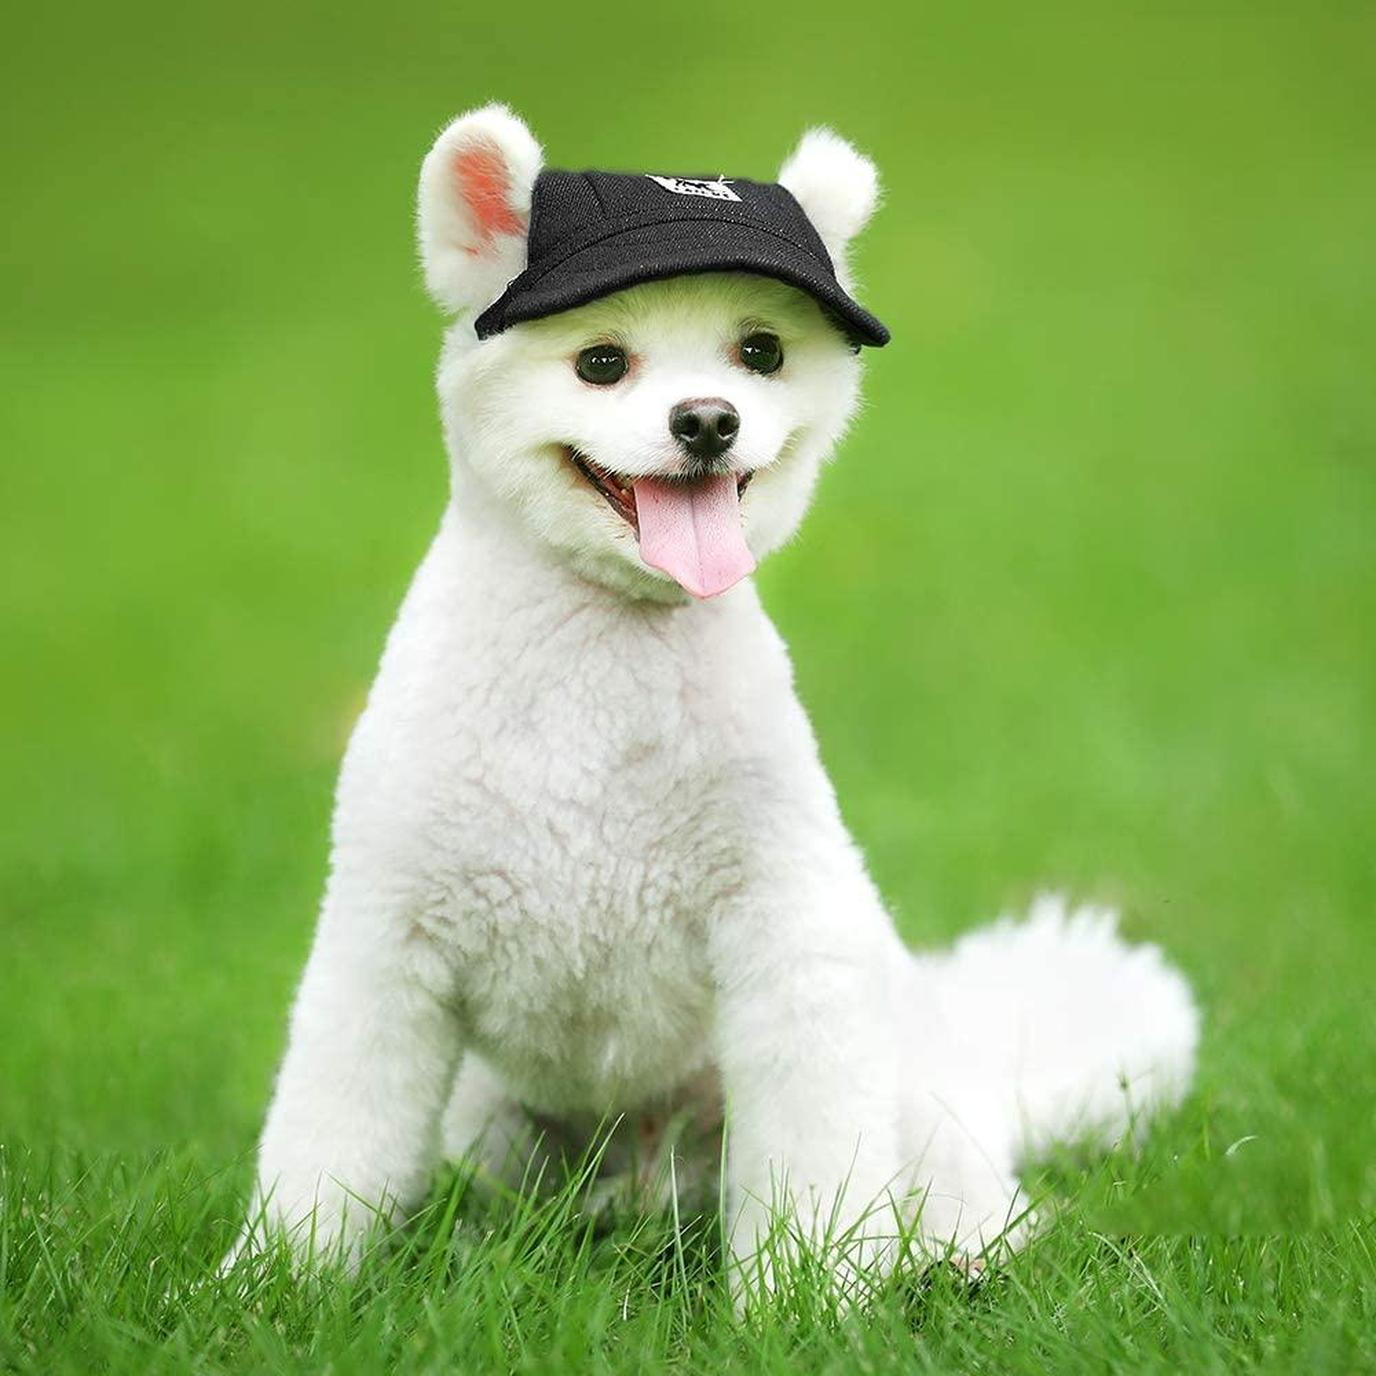 A dog wears her dog hat while playing outside.